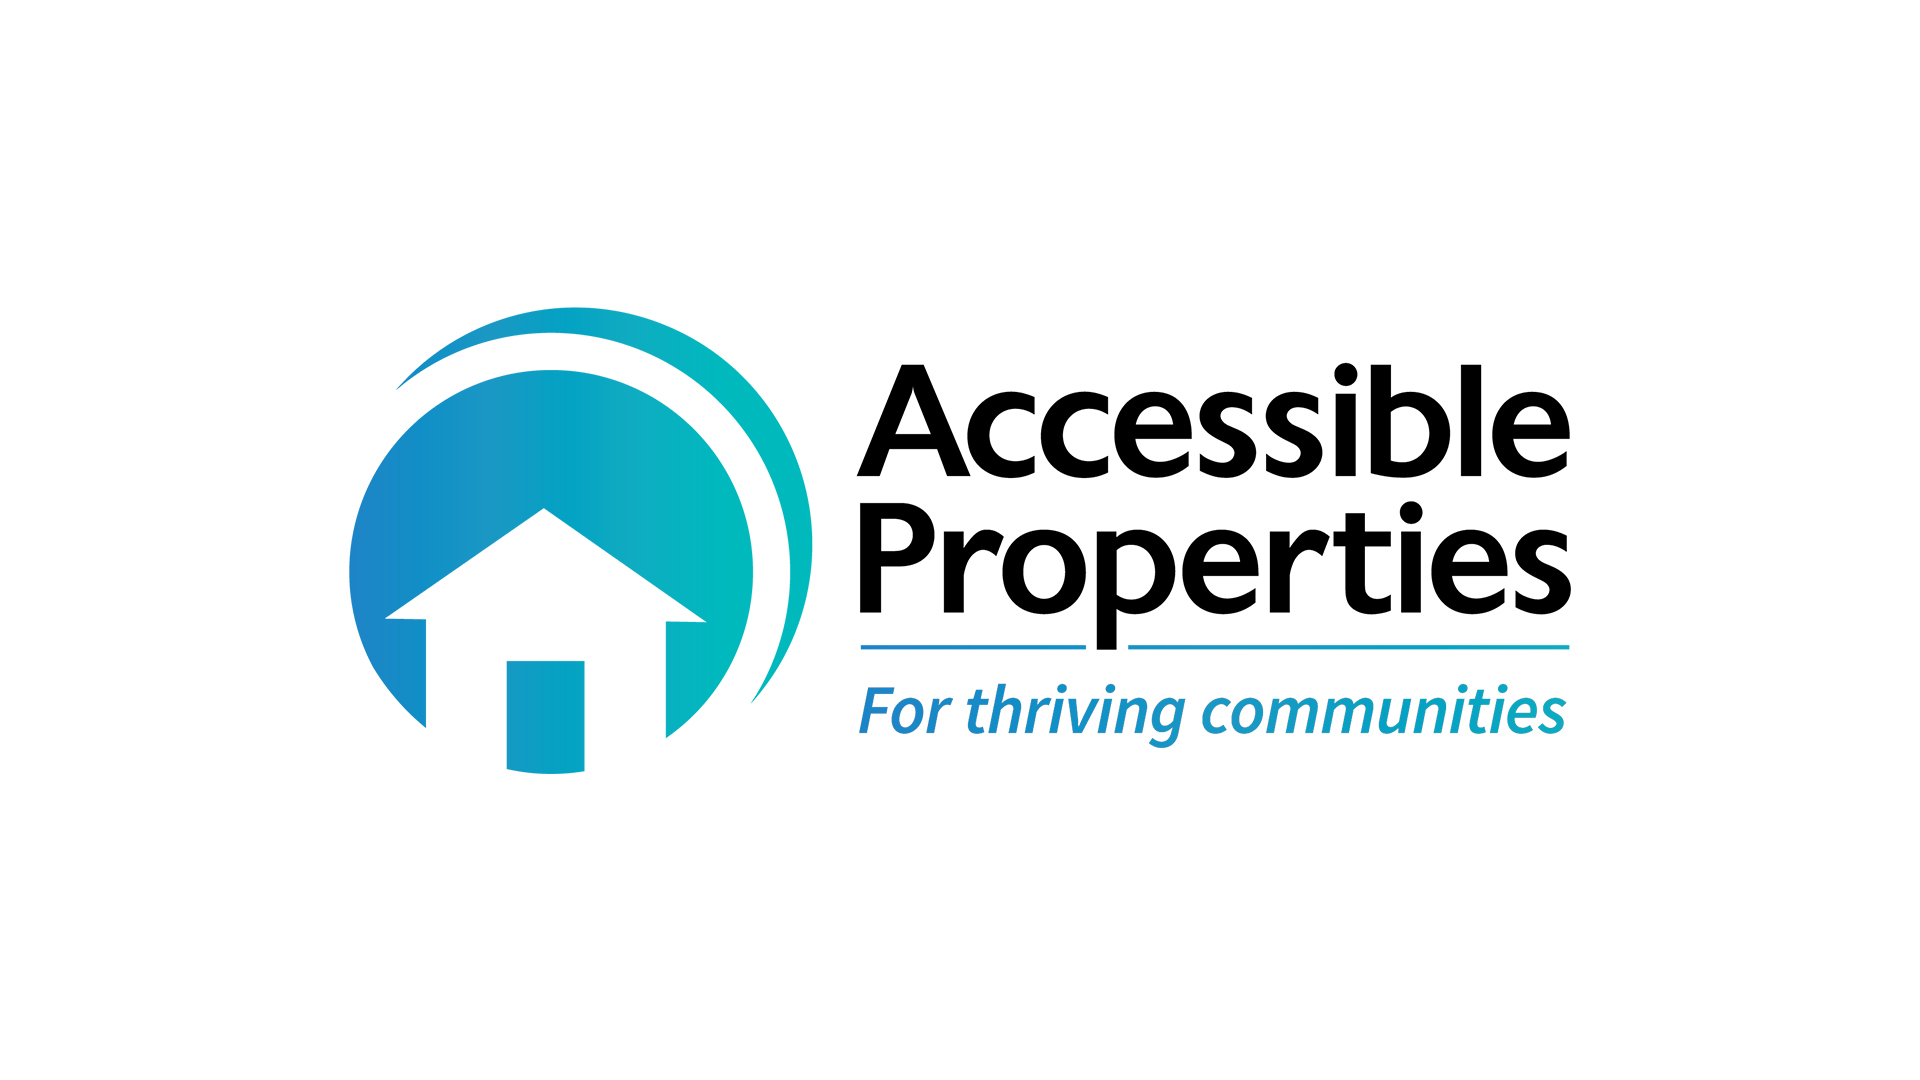 AccessibleProperties.jpg